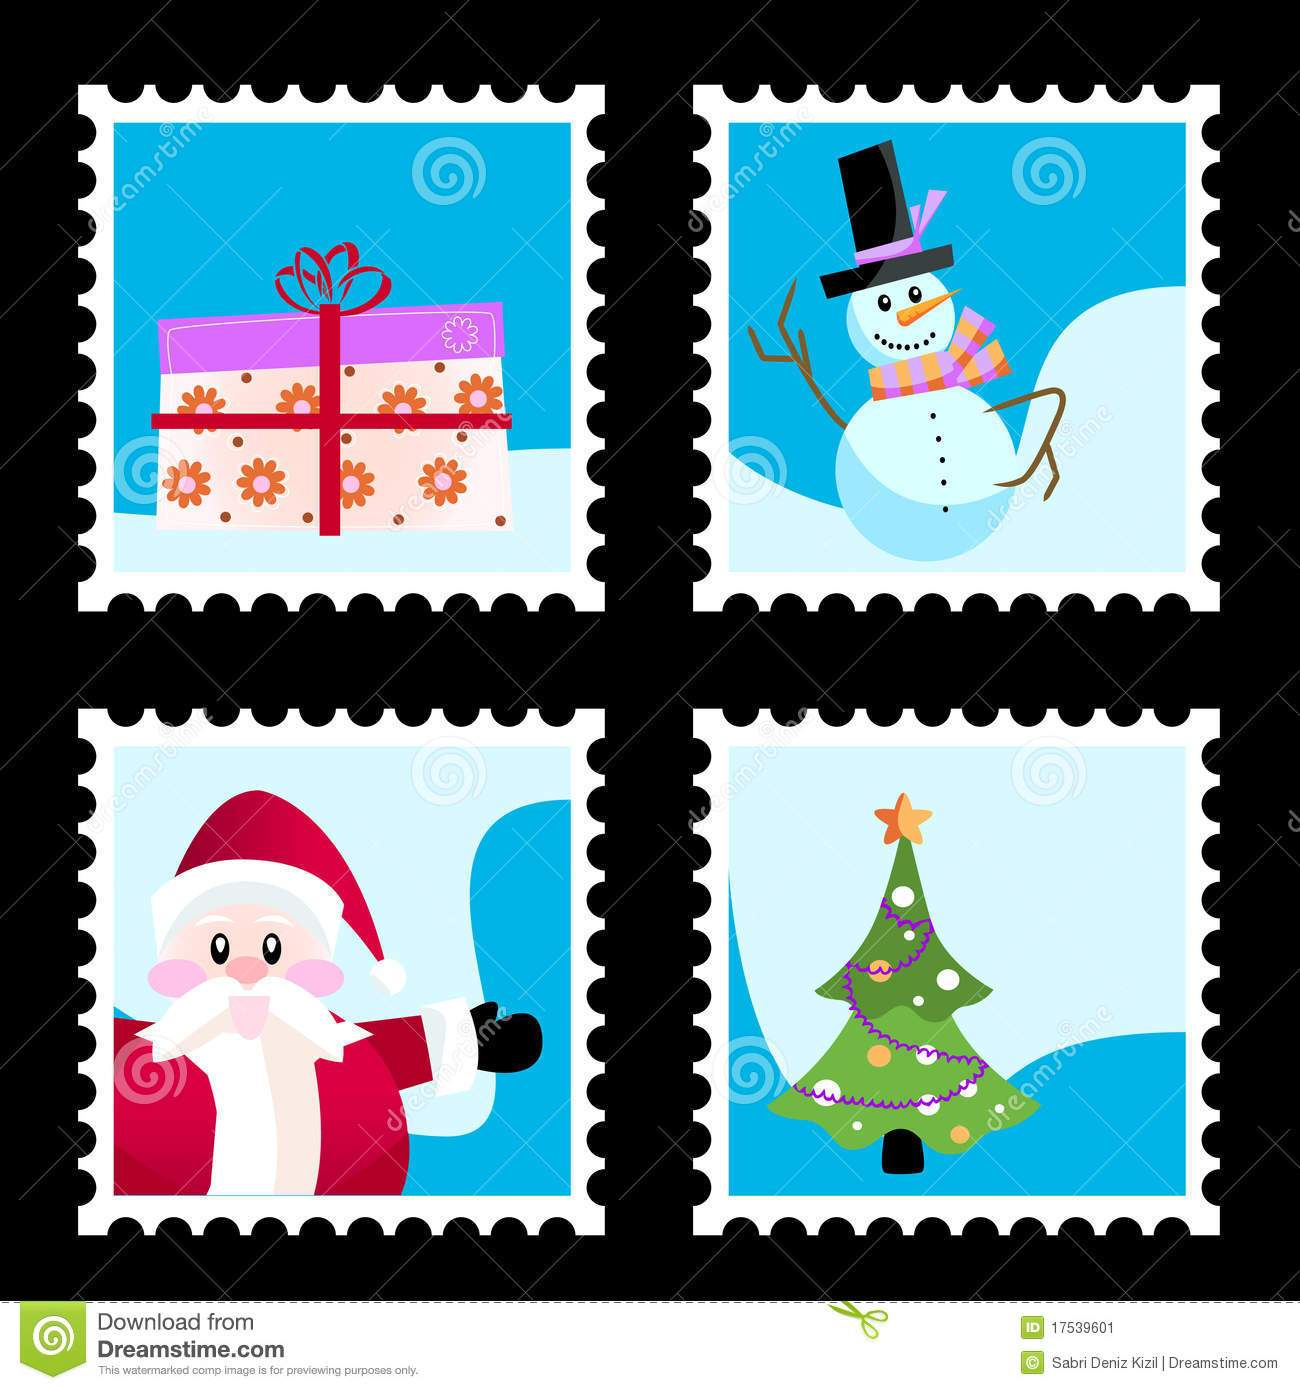 Christmas stamp clipart 7 » Clipart Portal.